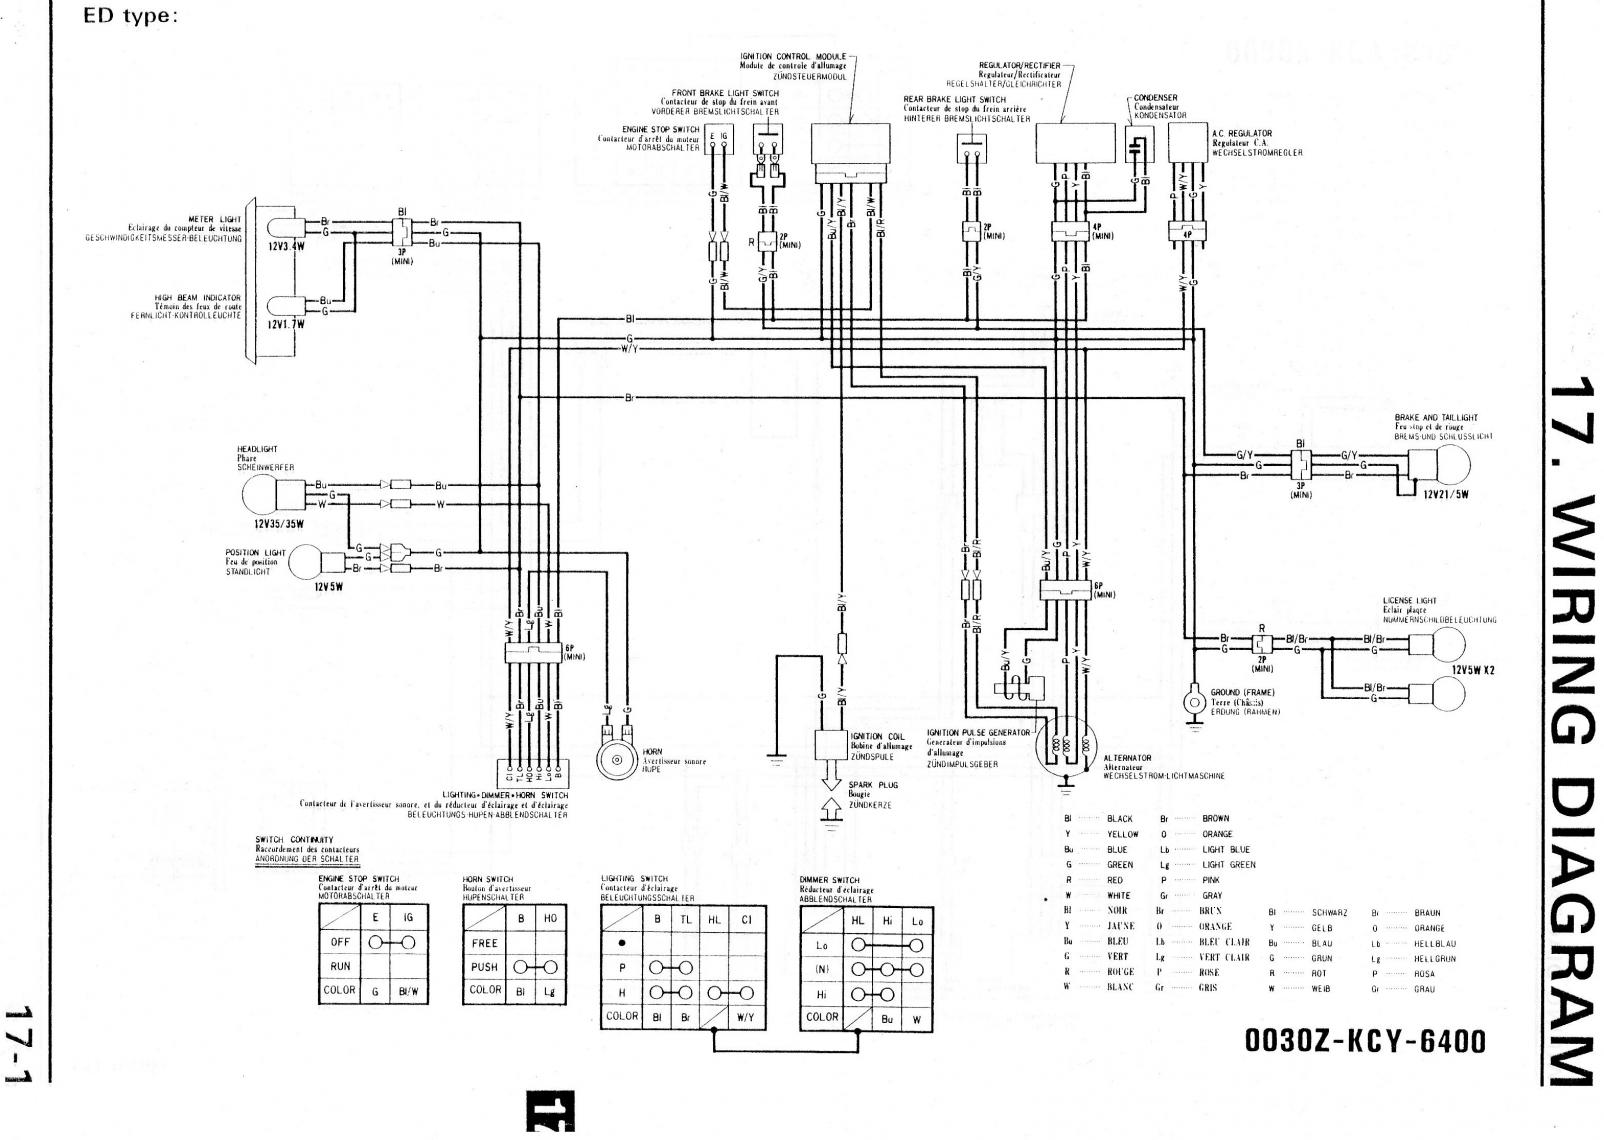 hight resolution of 2001 saturn l200 wiring diagram wiring diagram third level rh 6 16 11 jacobwinterstein com 2002 saturn sl2 wiring diagram 2007 saturn ion wiring diagram